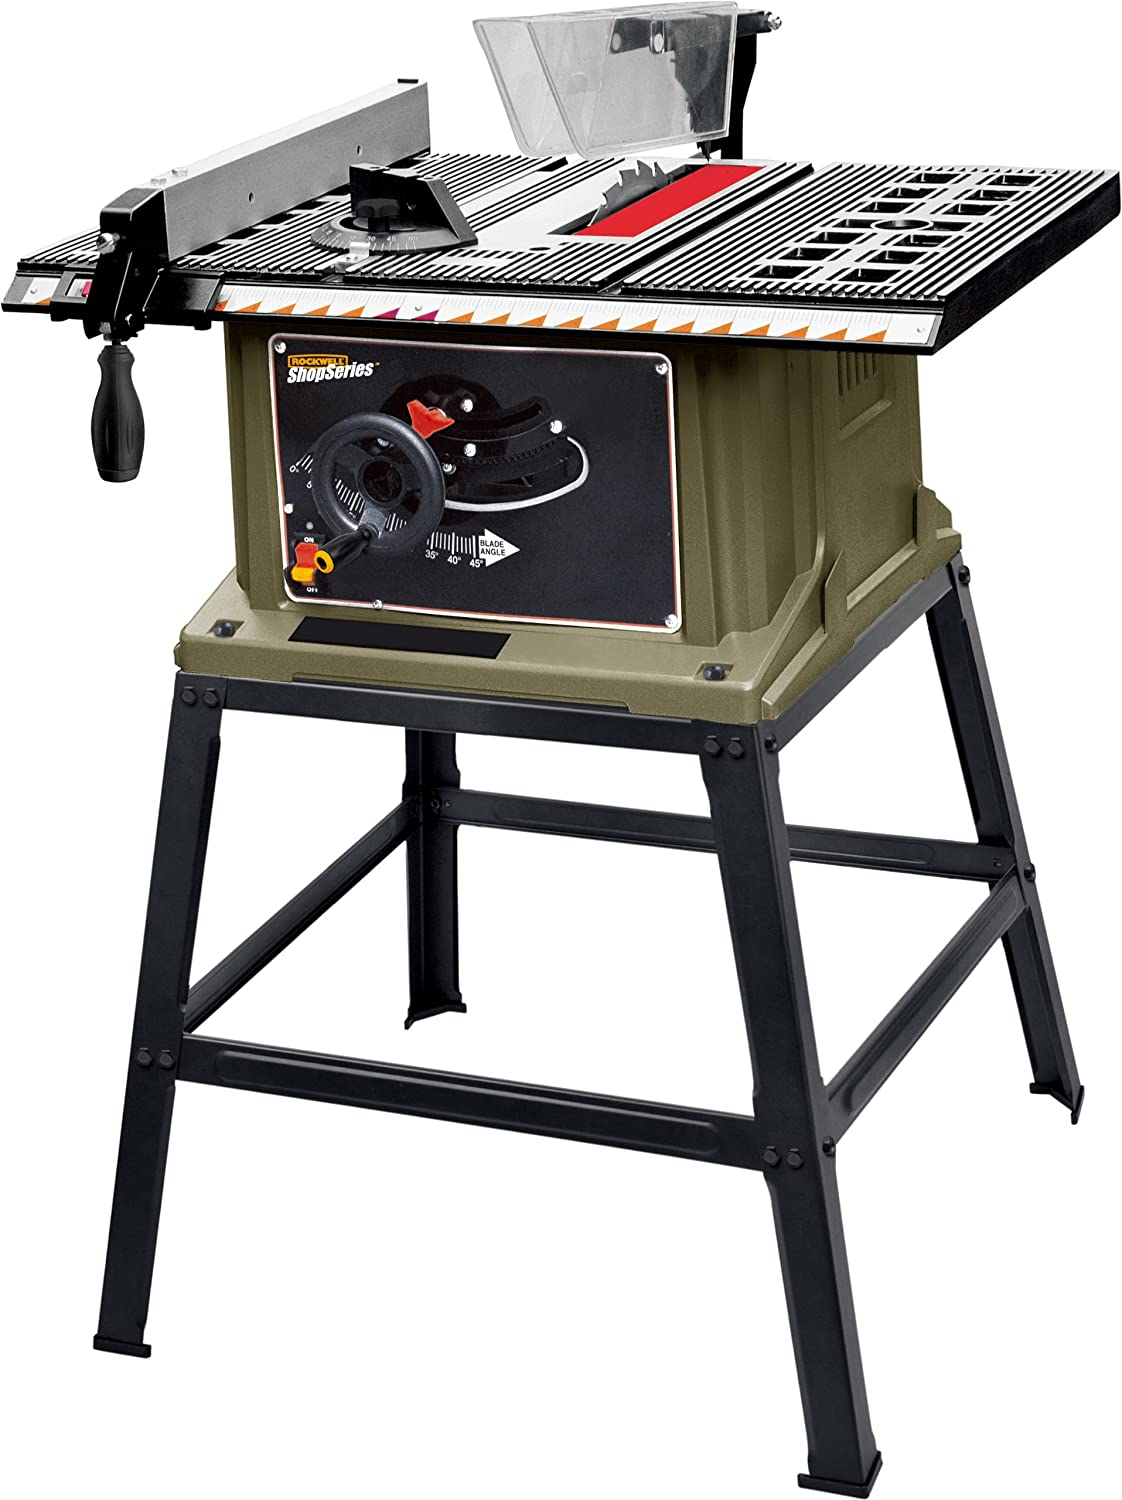 Shopseries rk72401 13 amp 10 table saw with stand power table shopseries rk72401 13 amp 10 table saw with stand power table saws amazon greentooth Choice Image